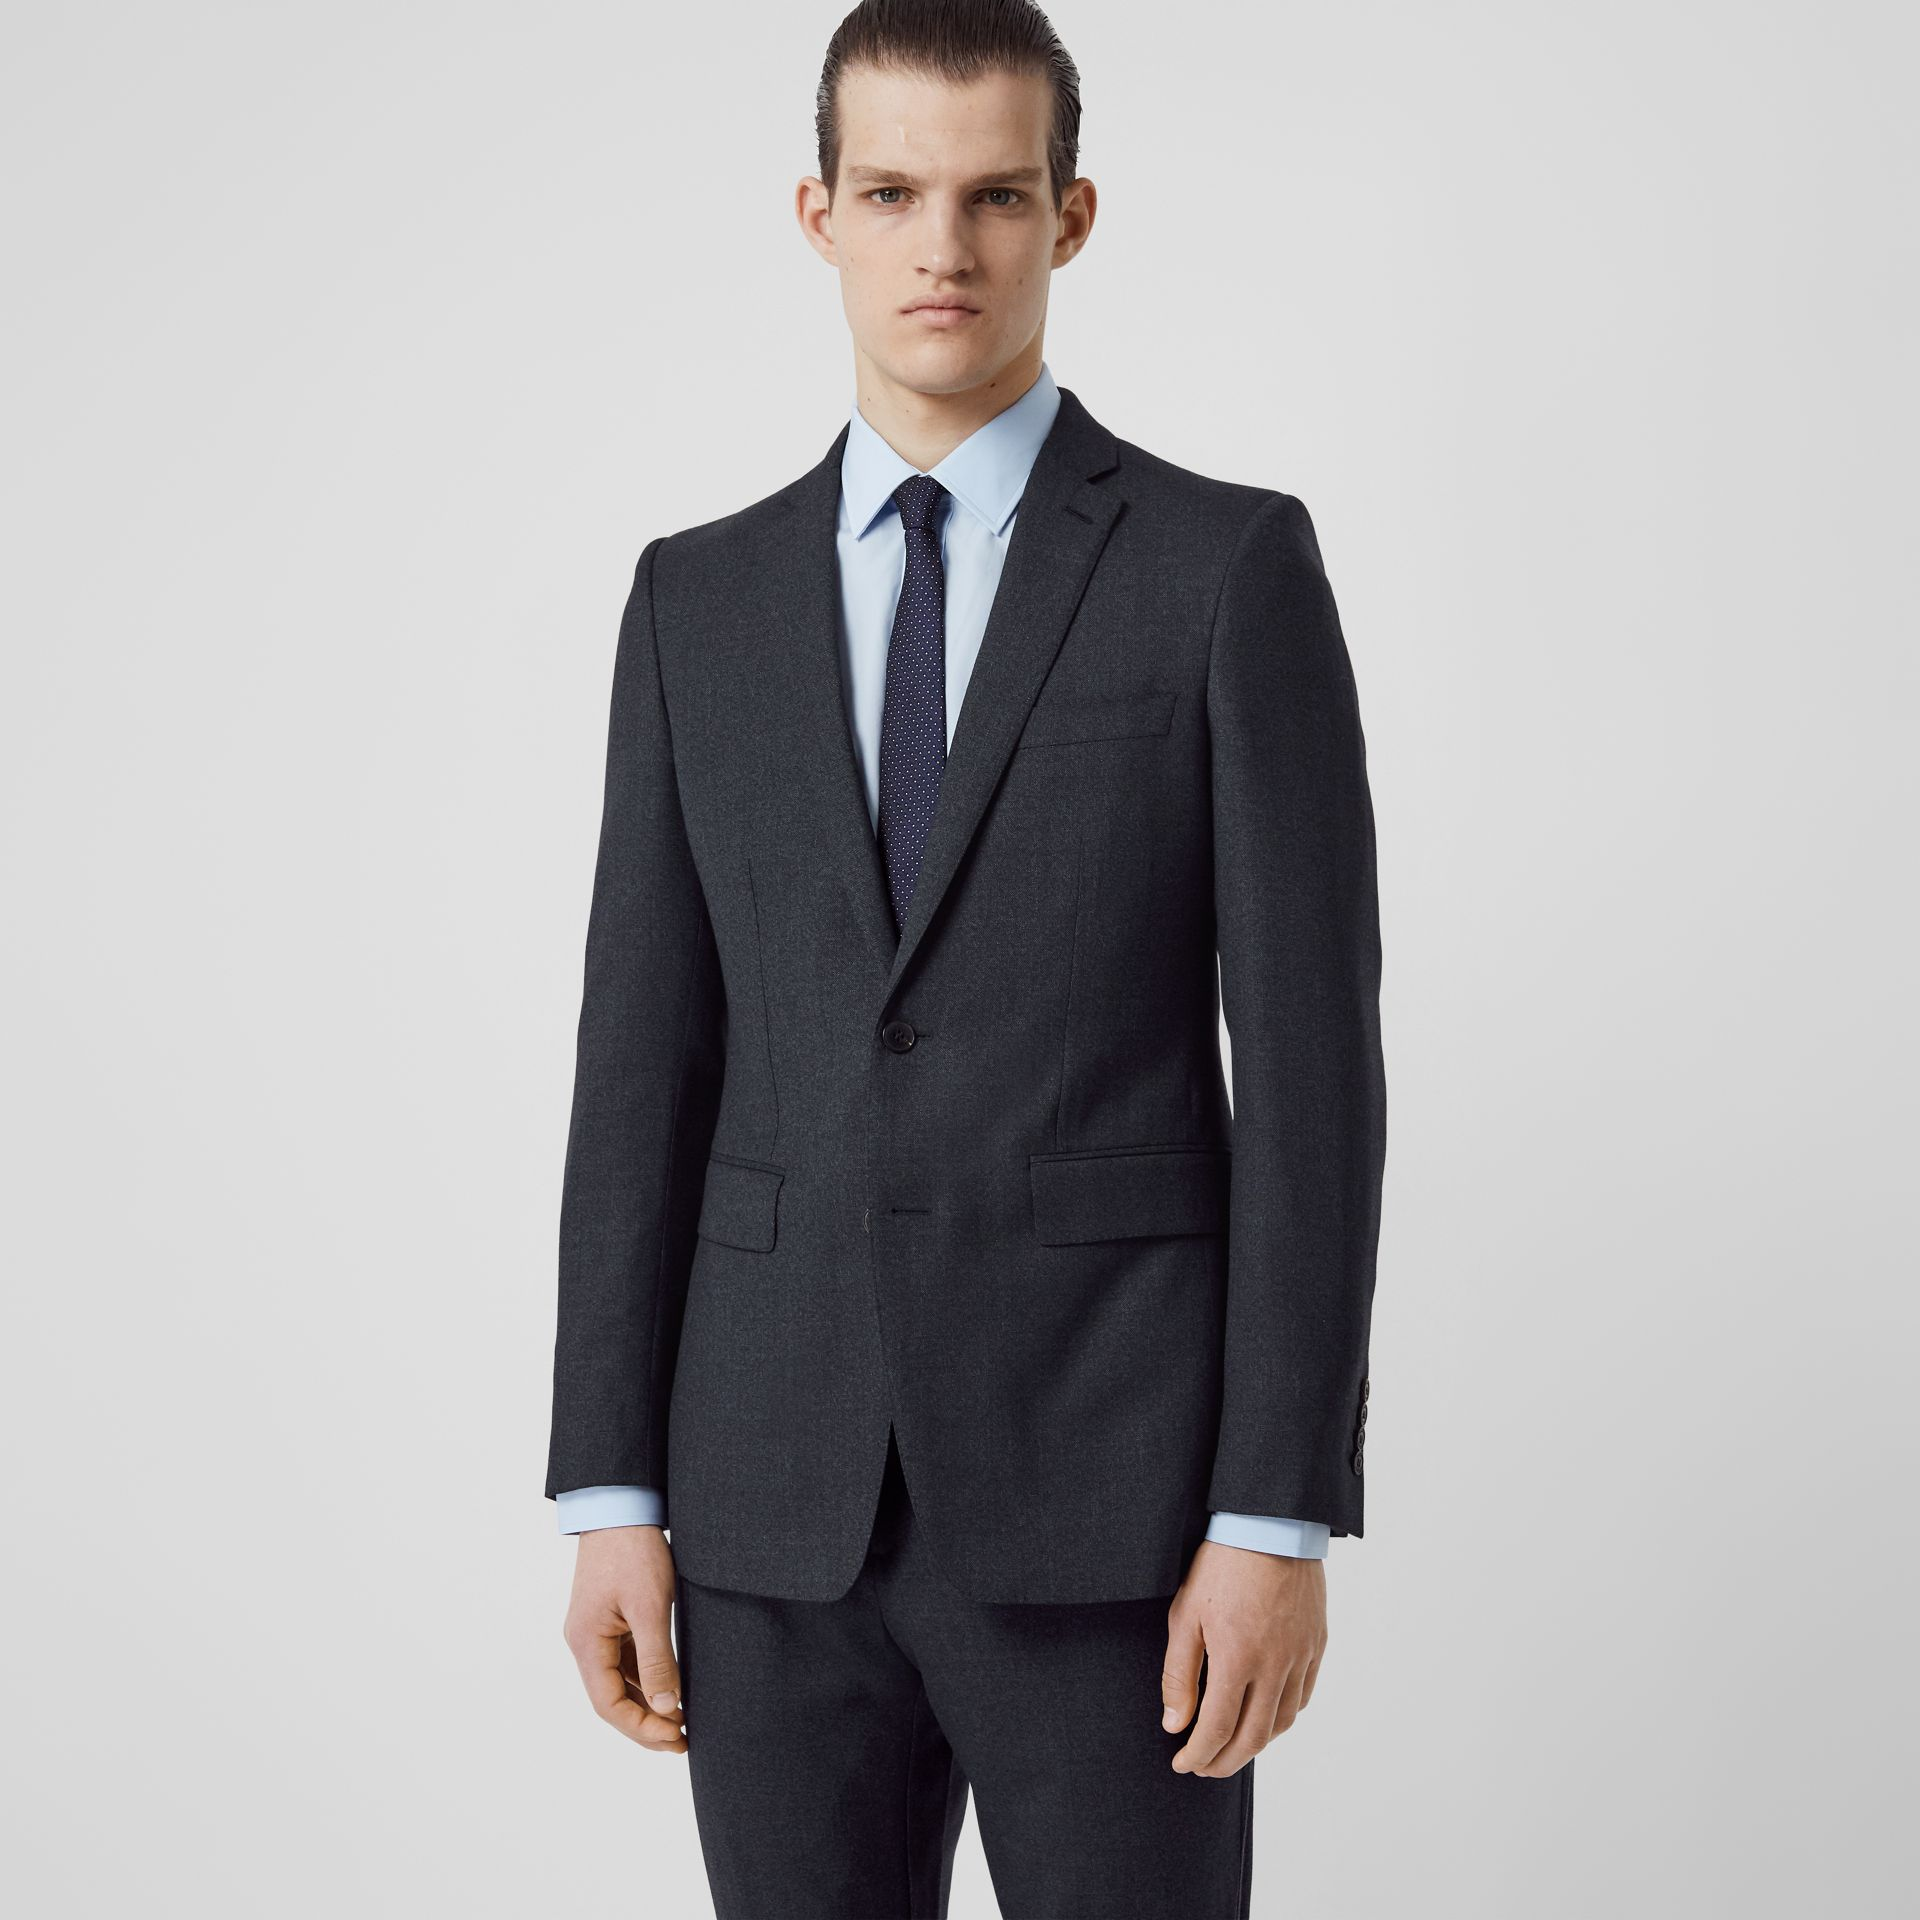 English Fit Sharkskin Wool Suit in Bright Navy Melange - Men | Burberry - gallery image 5